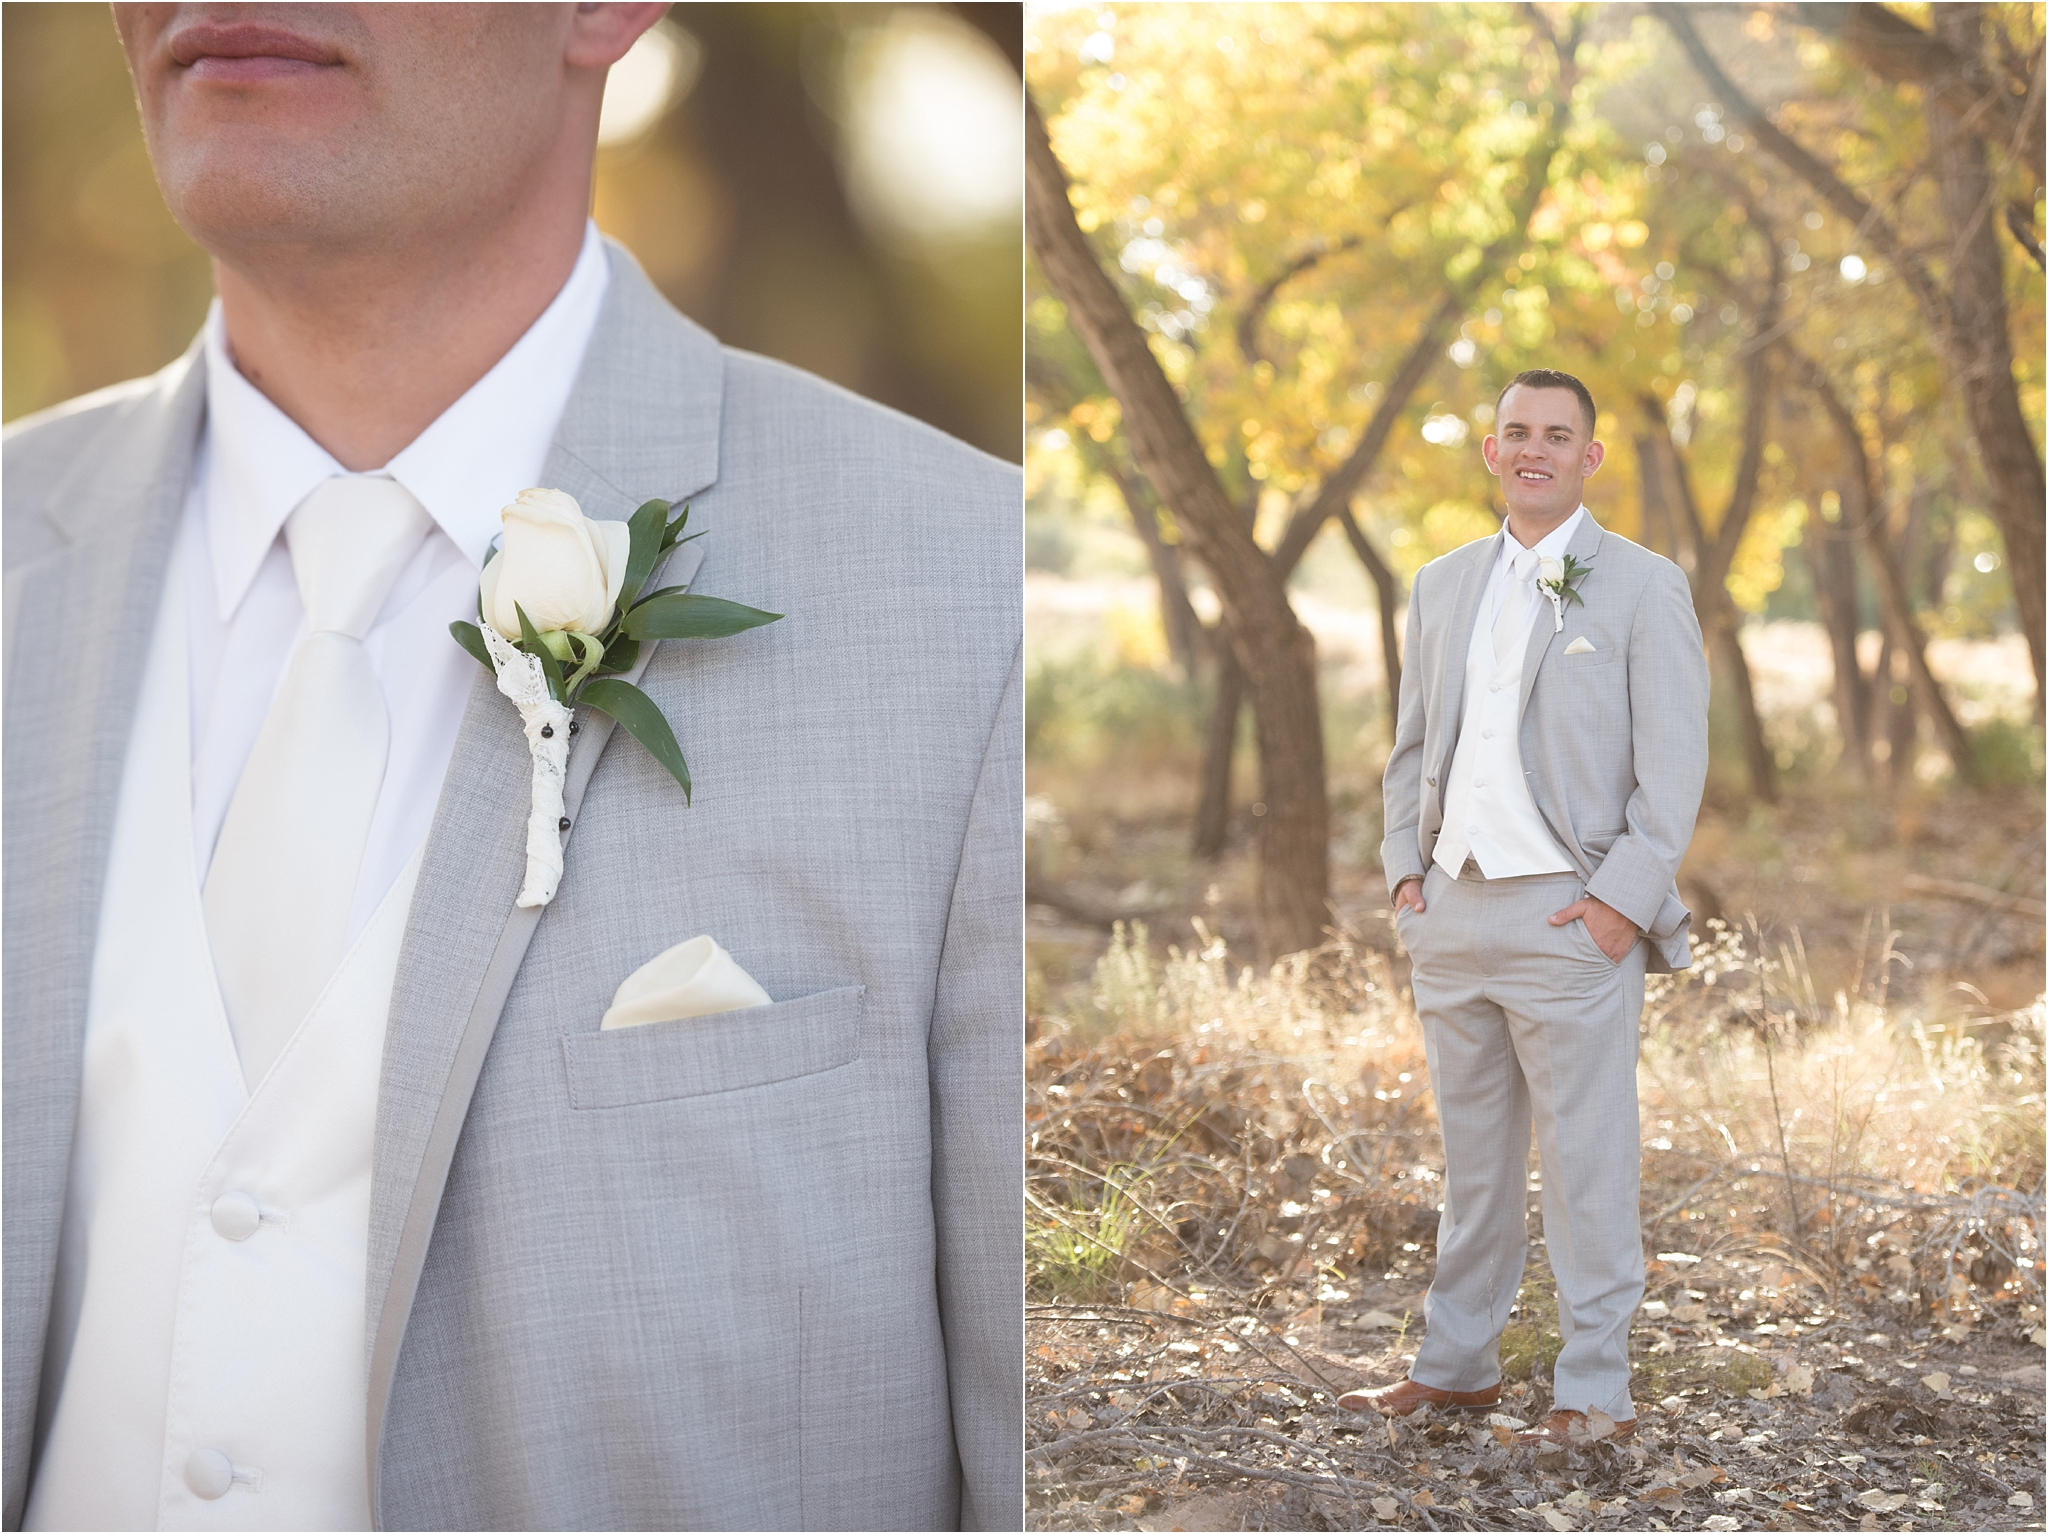 kayla kitts photography - albuquerque wedding photographer - hairpins and scissors - a cake odyssey - new mexico wedding photographer_0055.jpg